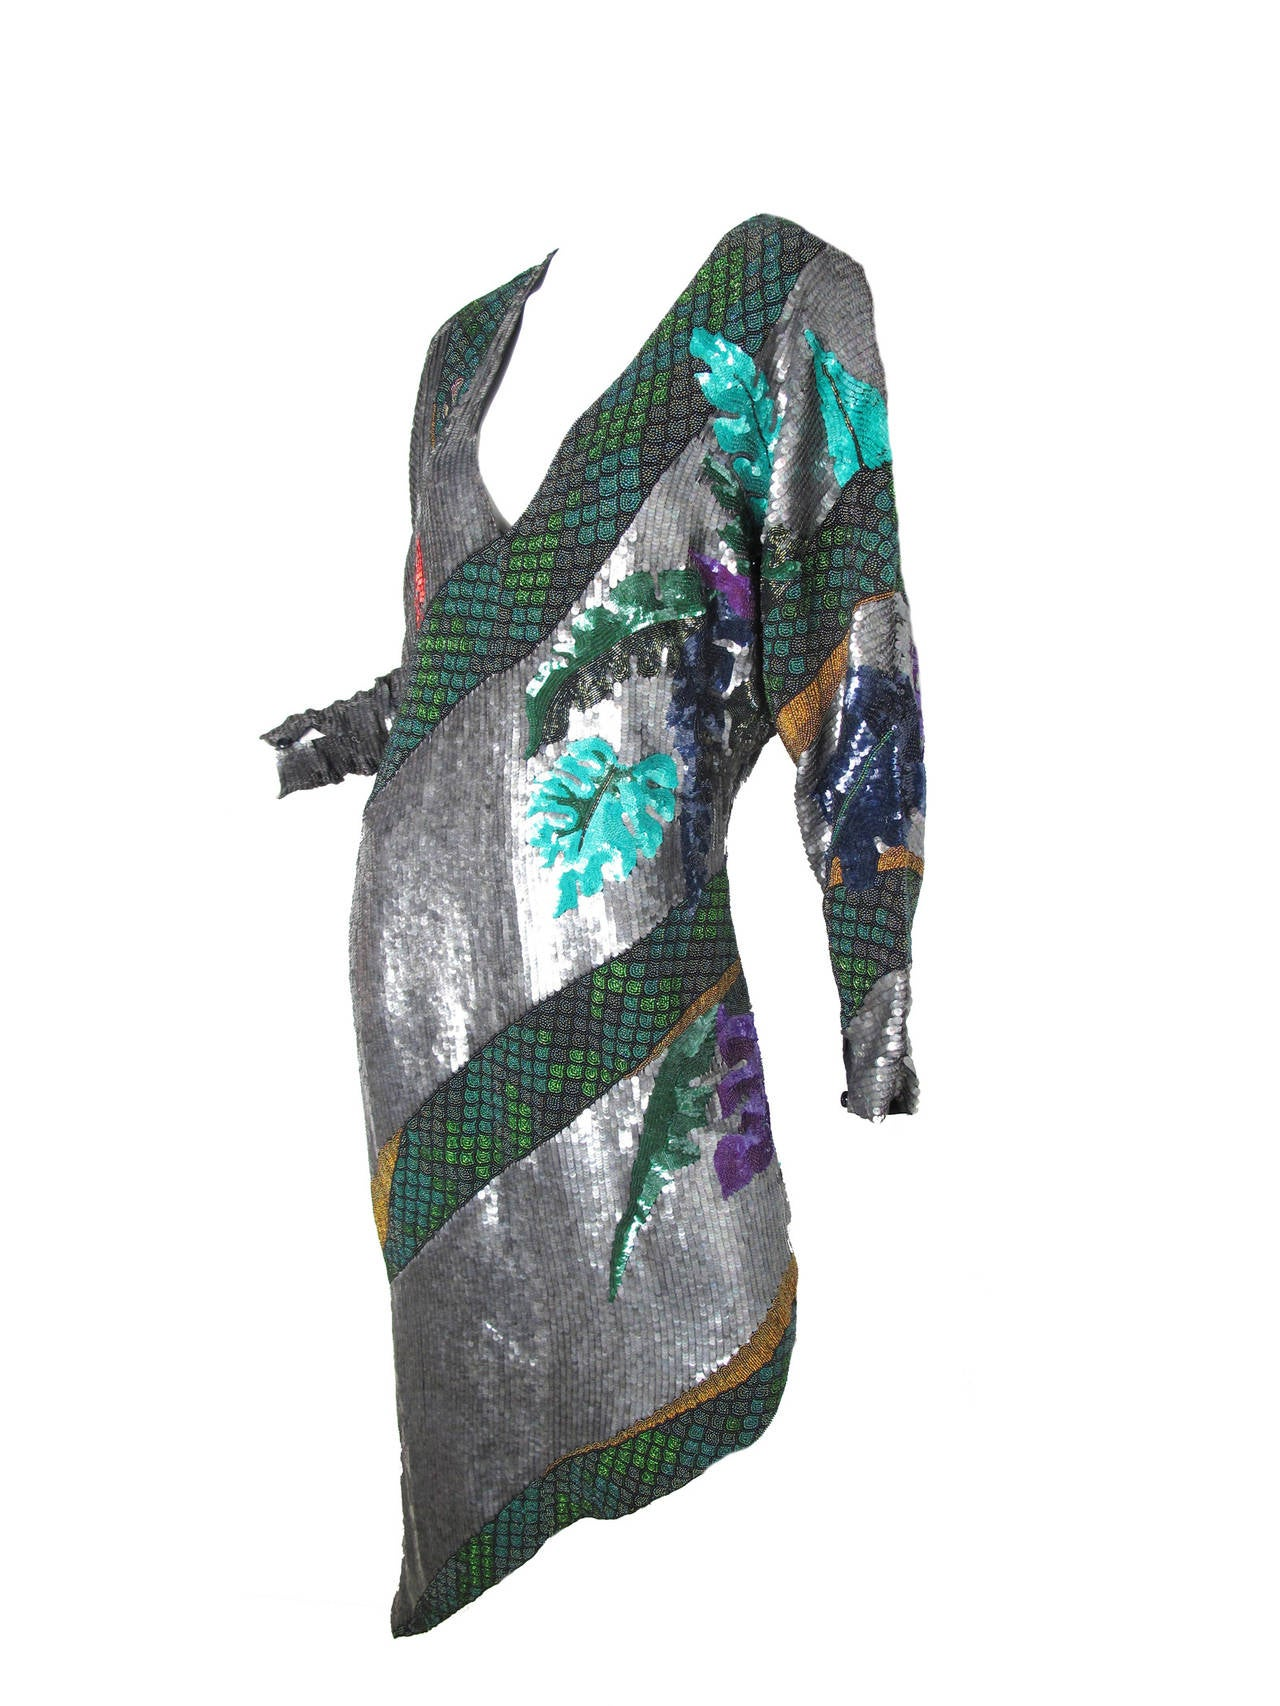 Rare beaded and sequined Krizia snake dress.  Snake wraps around and around dress.  Condition: Excellent, looks new. Size 42/ US 8  We accept returns for refund, please see our terms.  We offer free ground shipping within the US.   *this listing